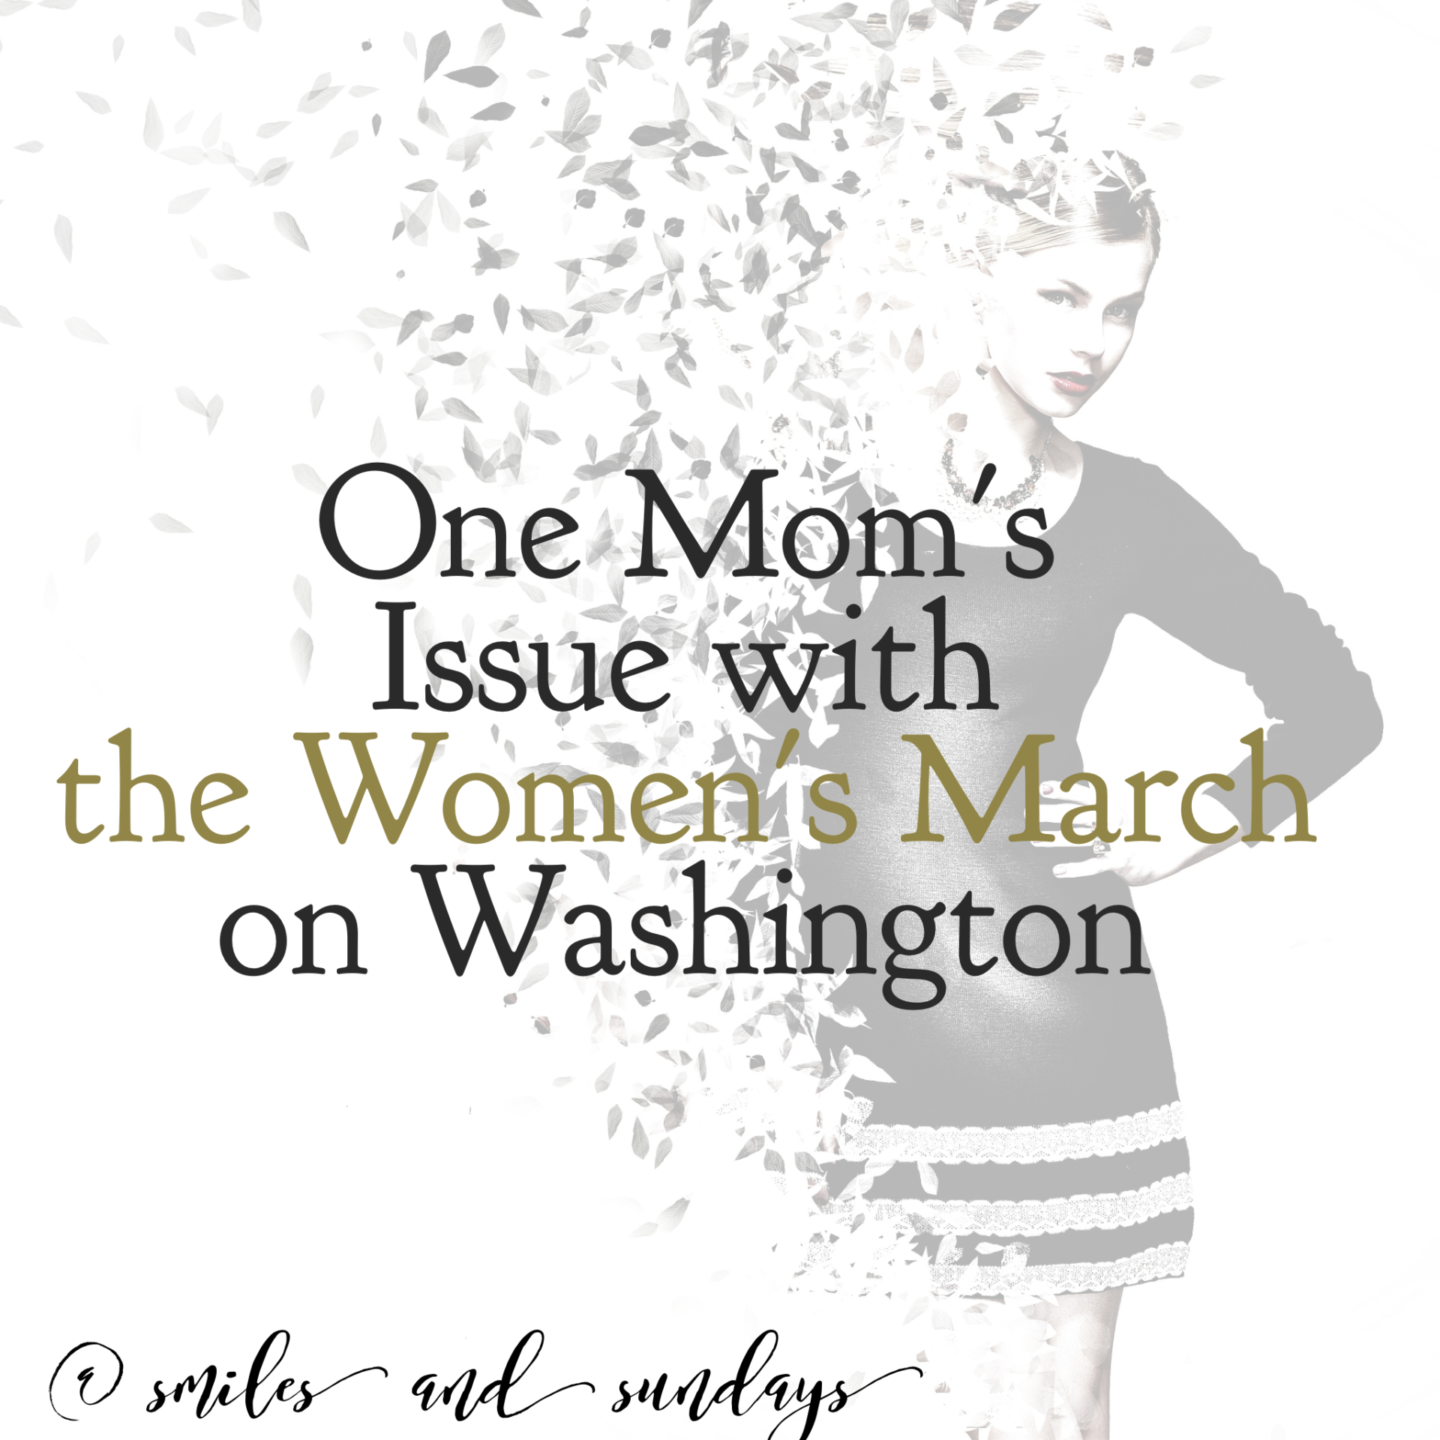 One Mom's Issues with the Women's March on Washington